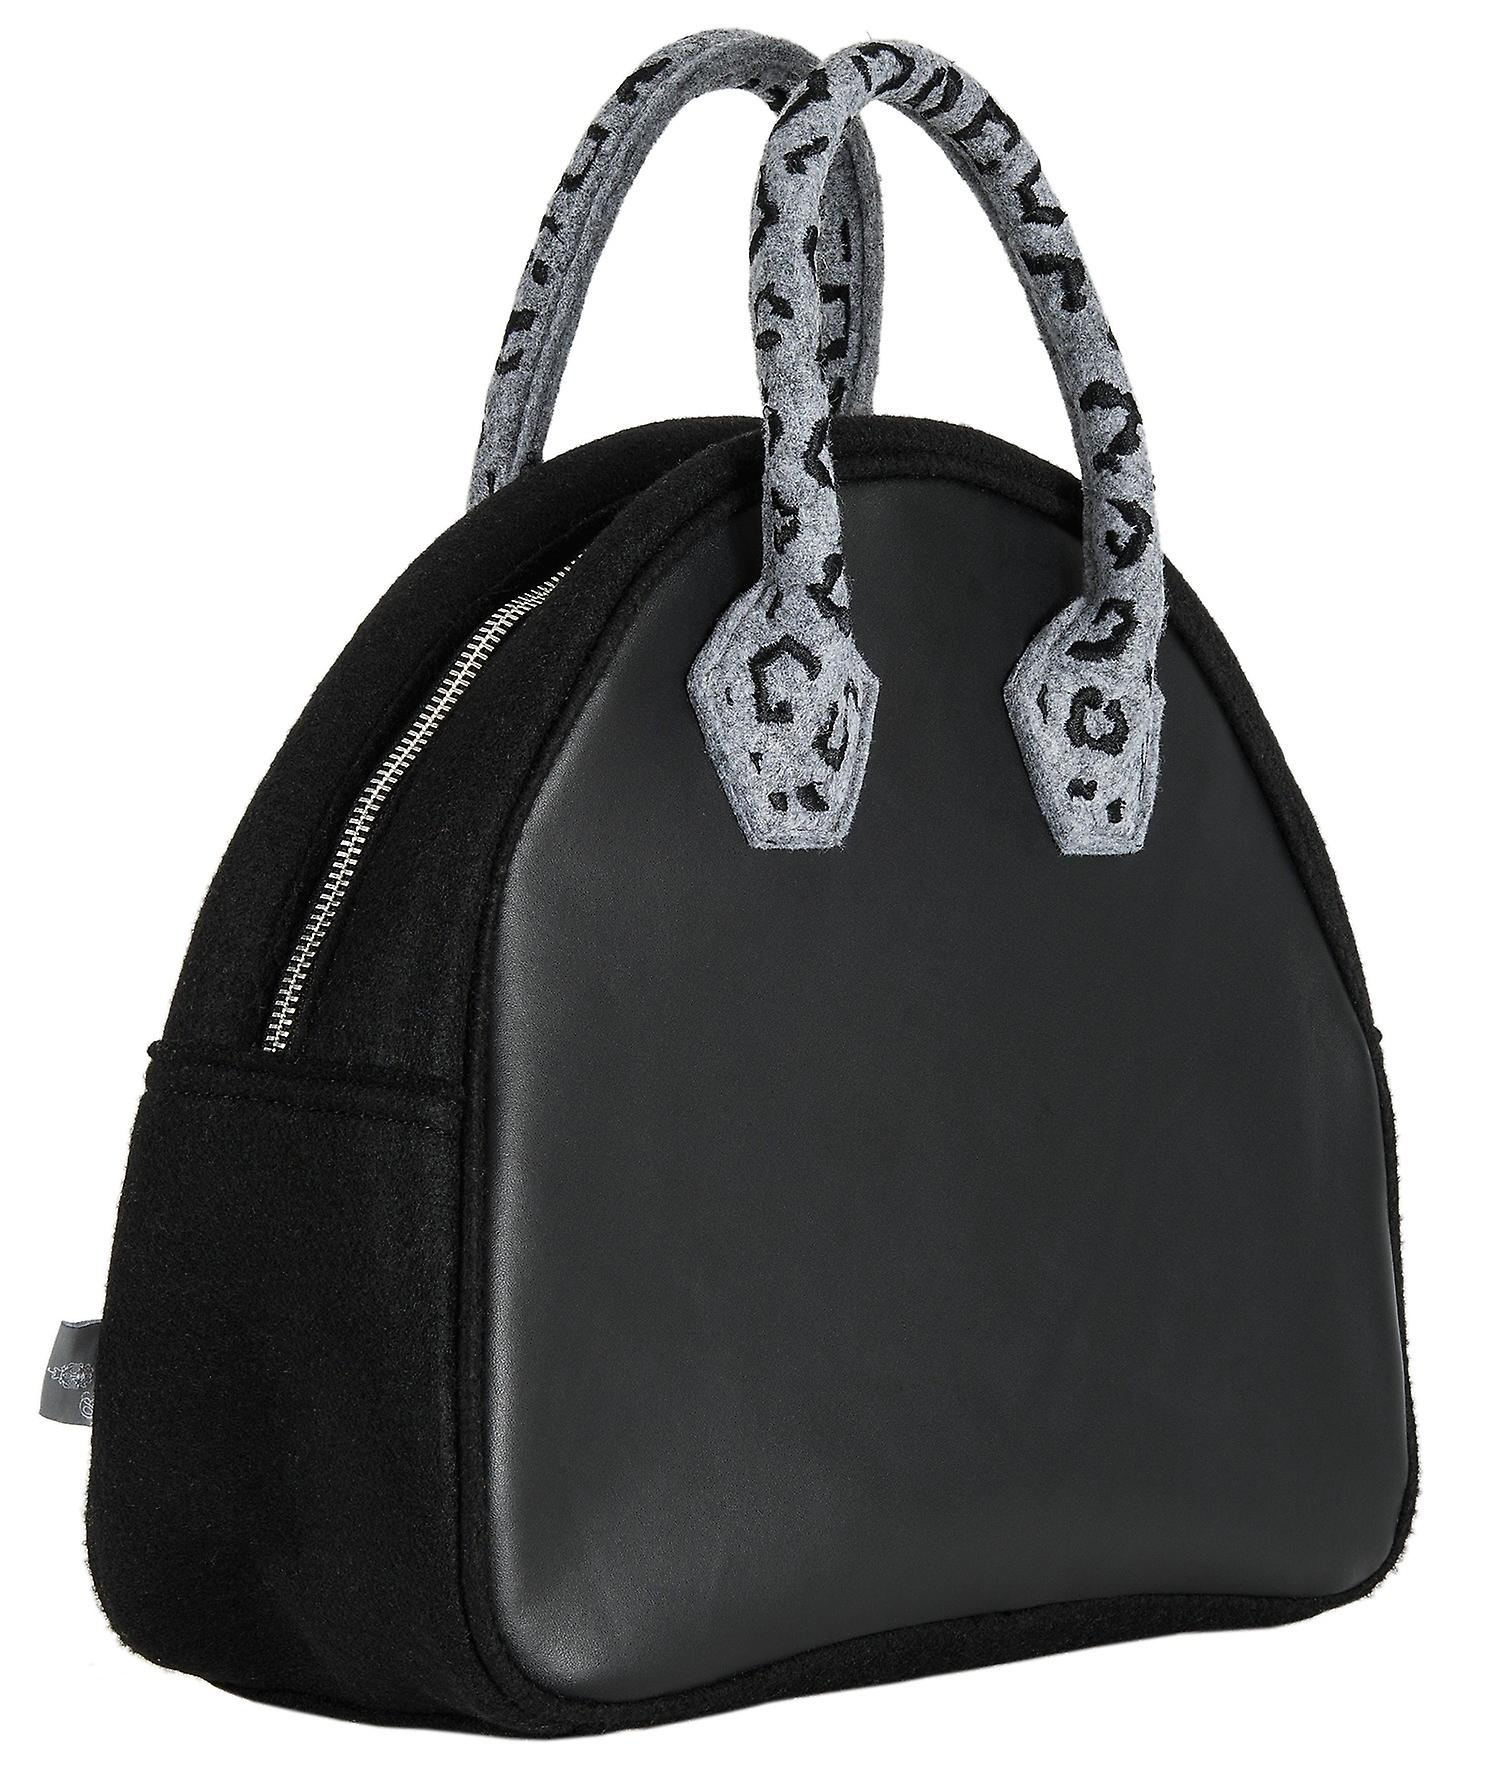 Burgmeister ladies/gents felt bag, TBM3006-162